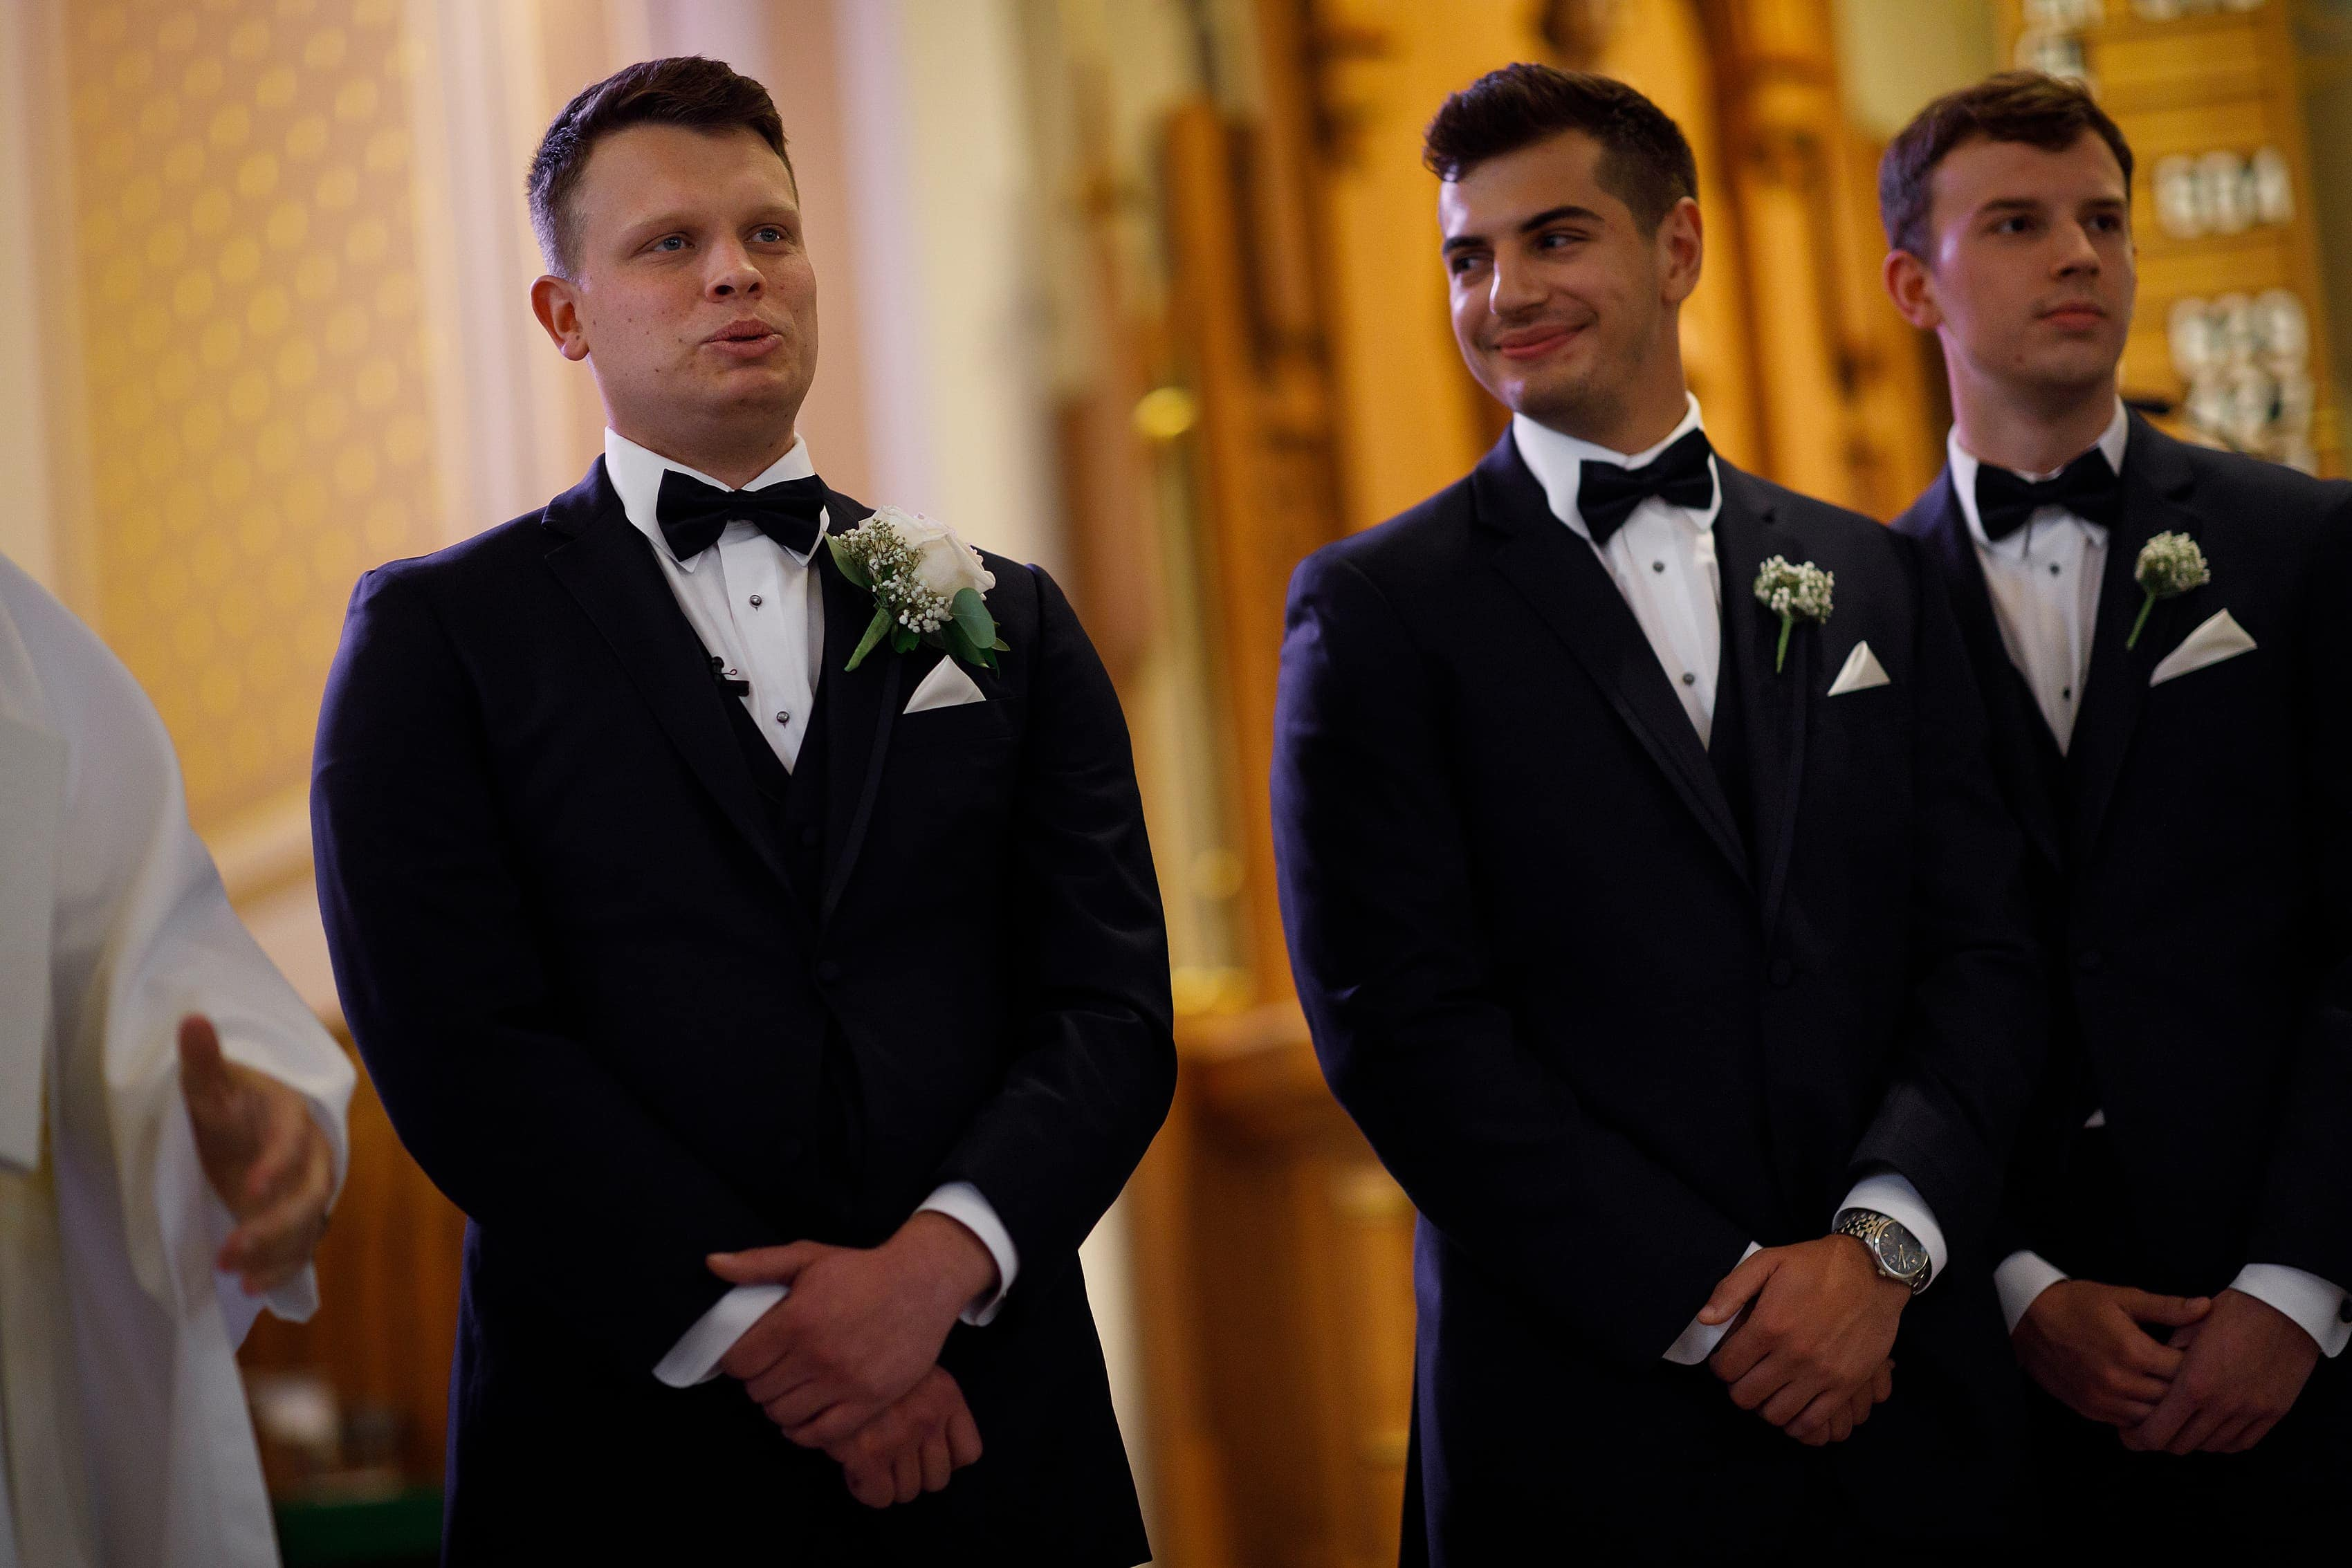 Groom reacts to seeing bride as she walks down the aisle at St. Francis Church in Lake Geneva, Wisconsin